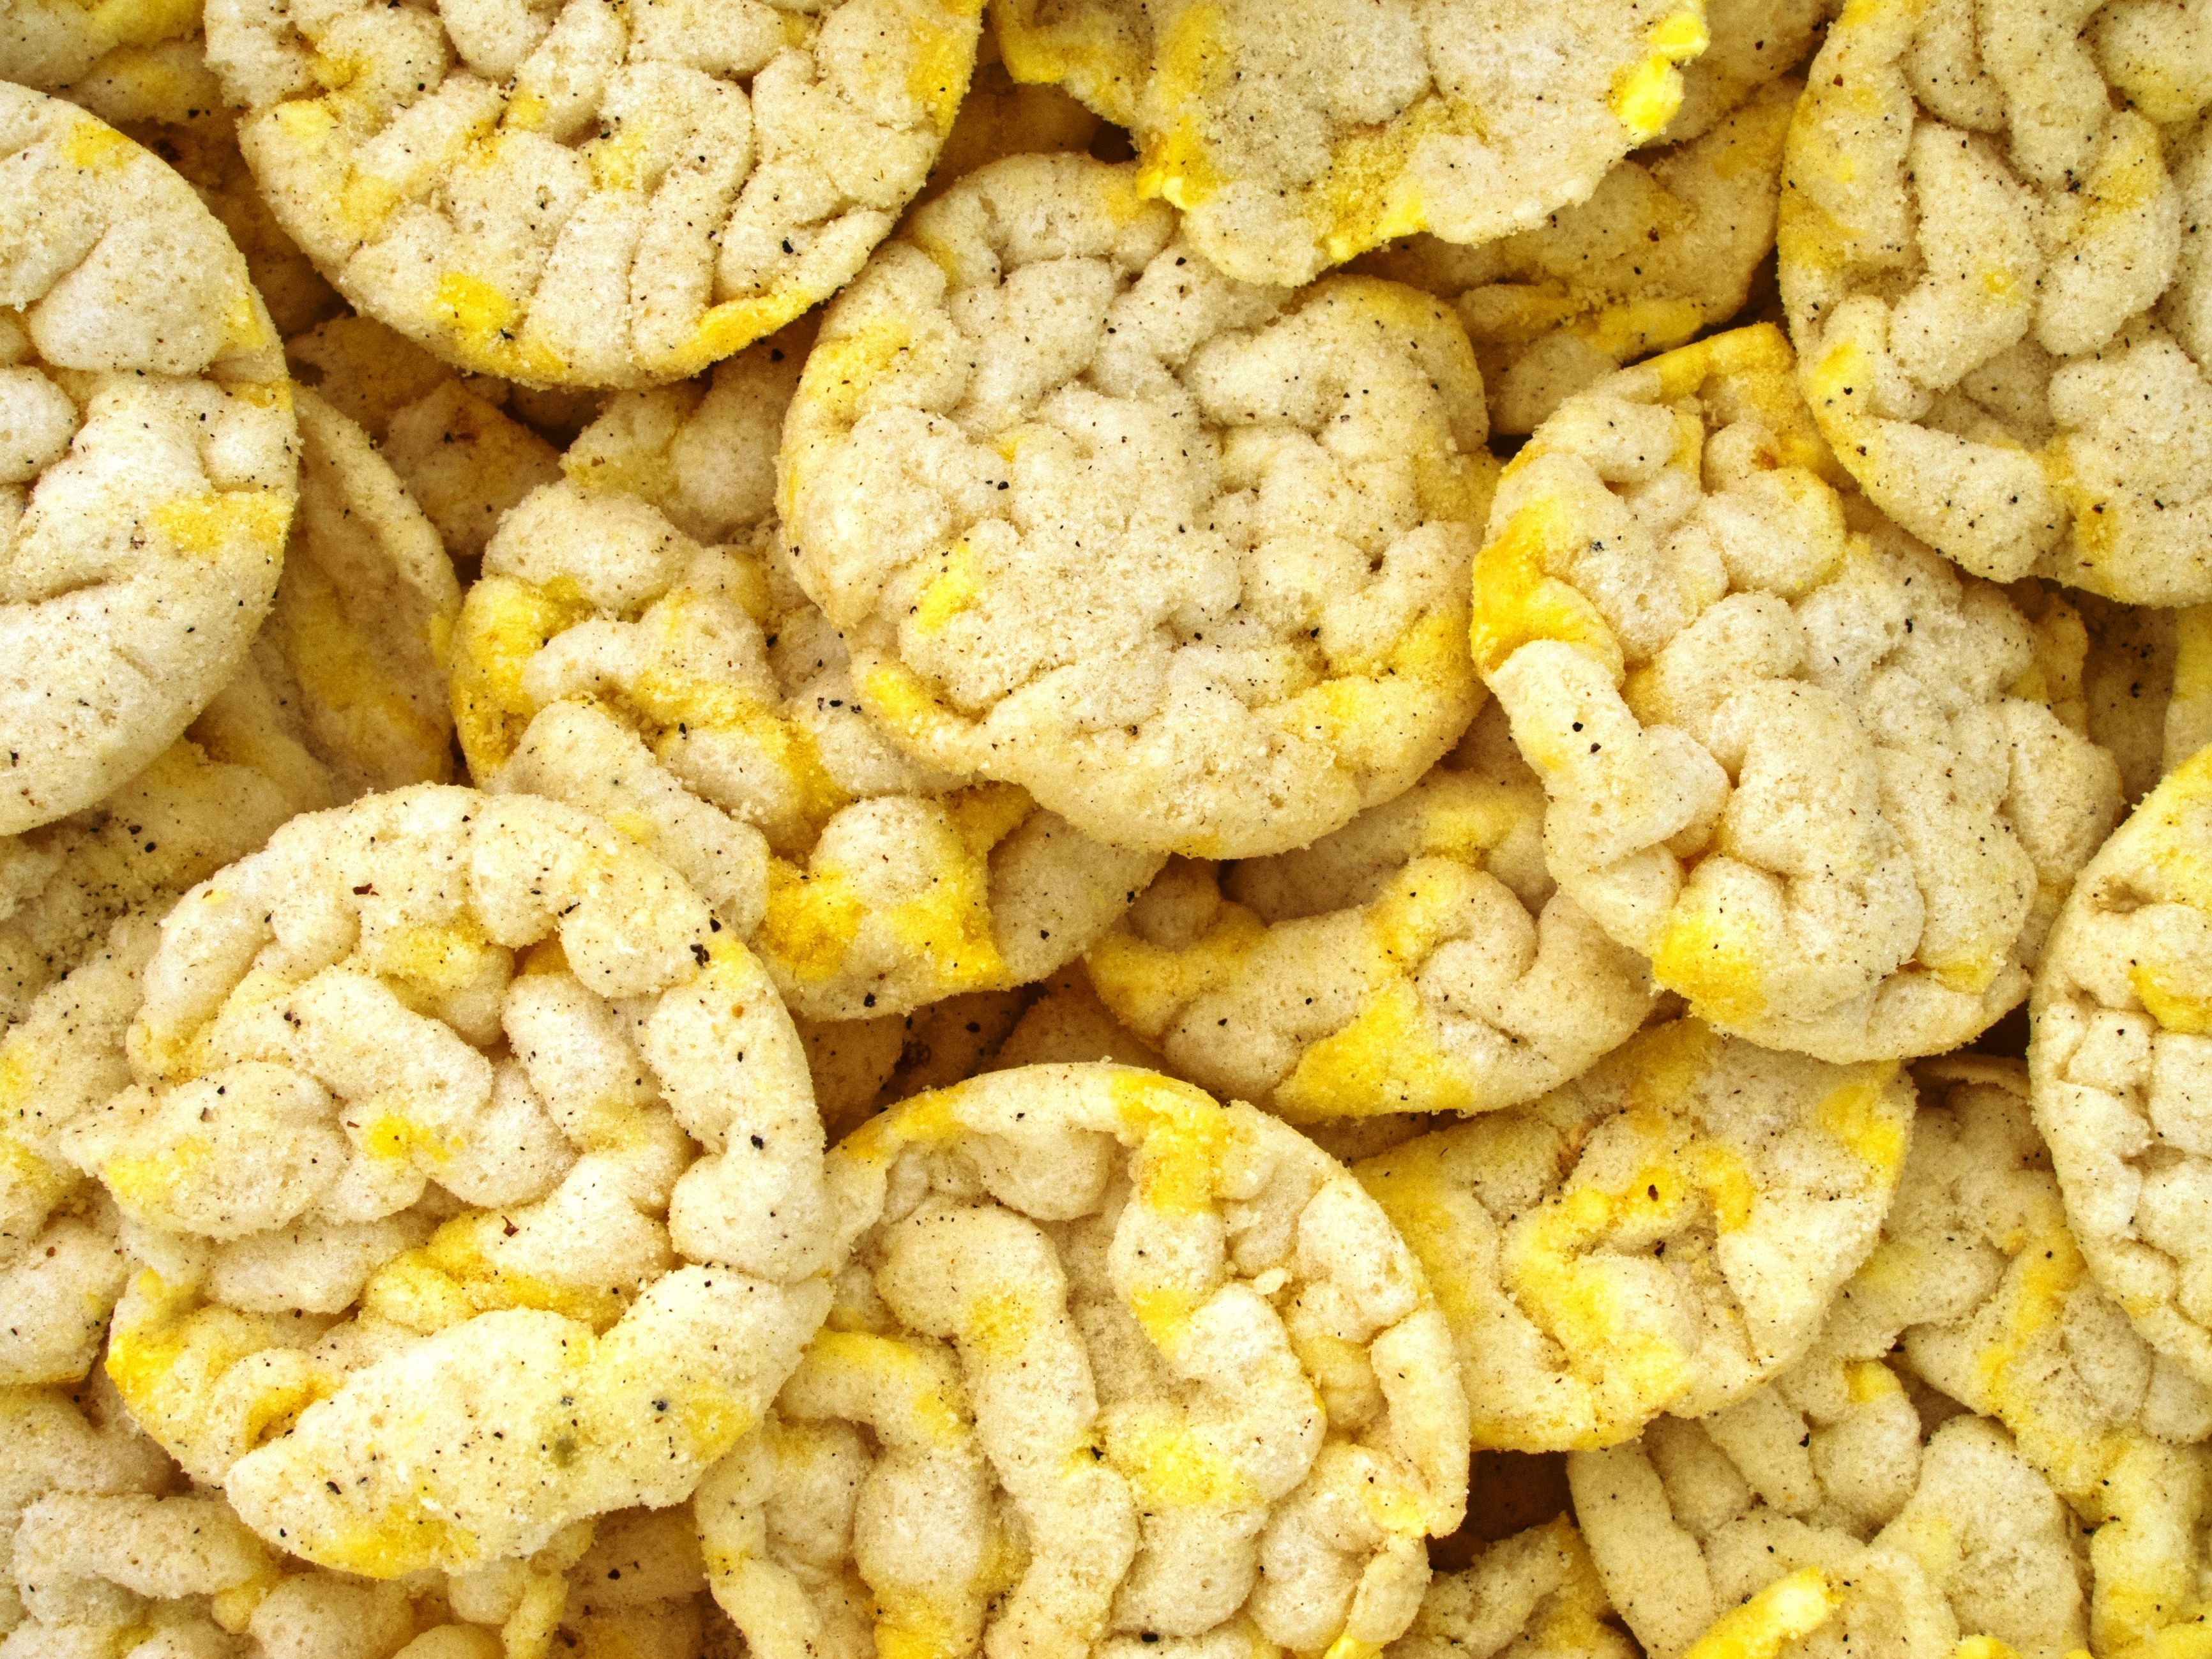 Mini flavored rice cakes are great snacks because they